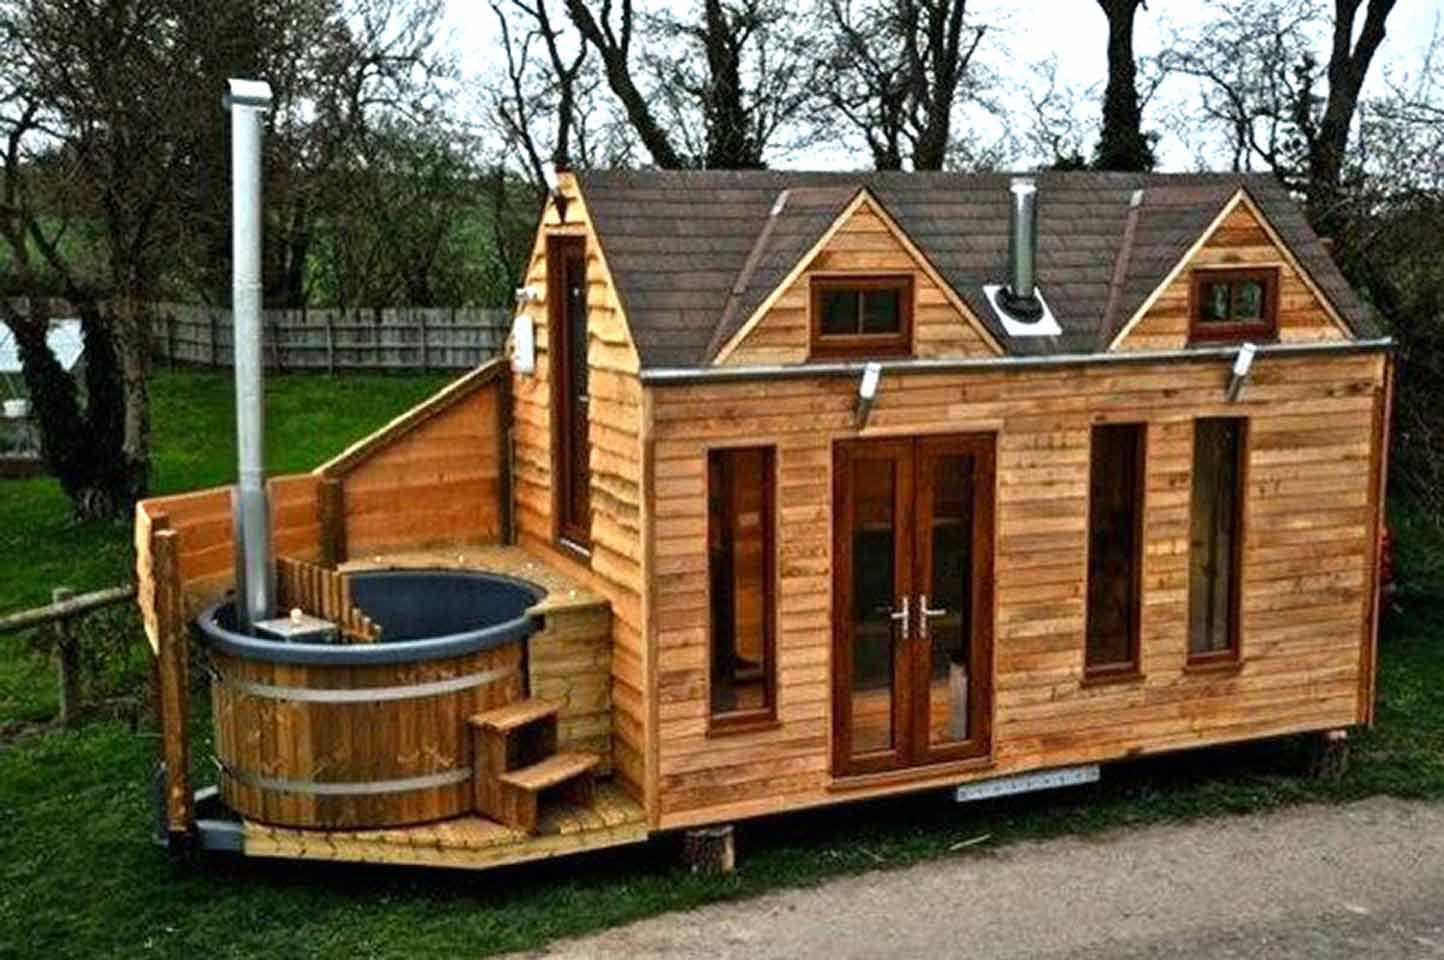 Tiny Log Homes On Wheels Tinywood House With Hut Tub In England 001 Lo Res